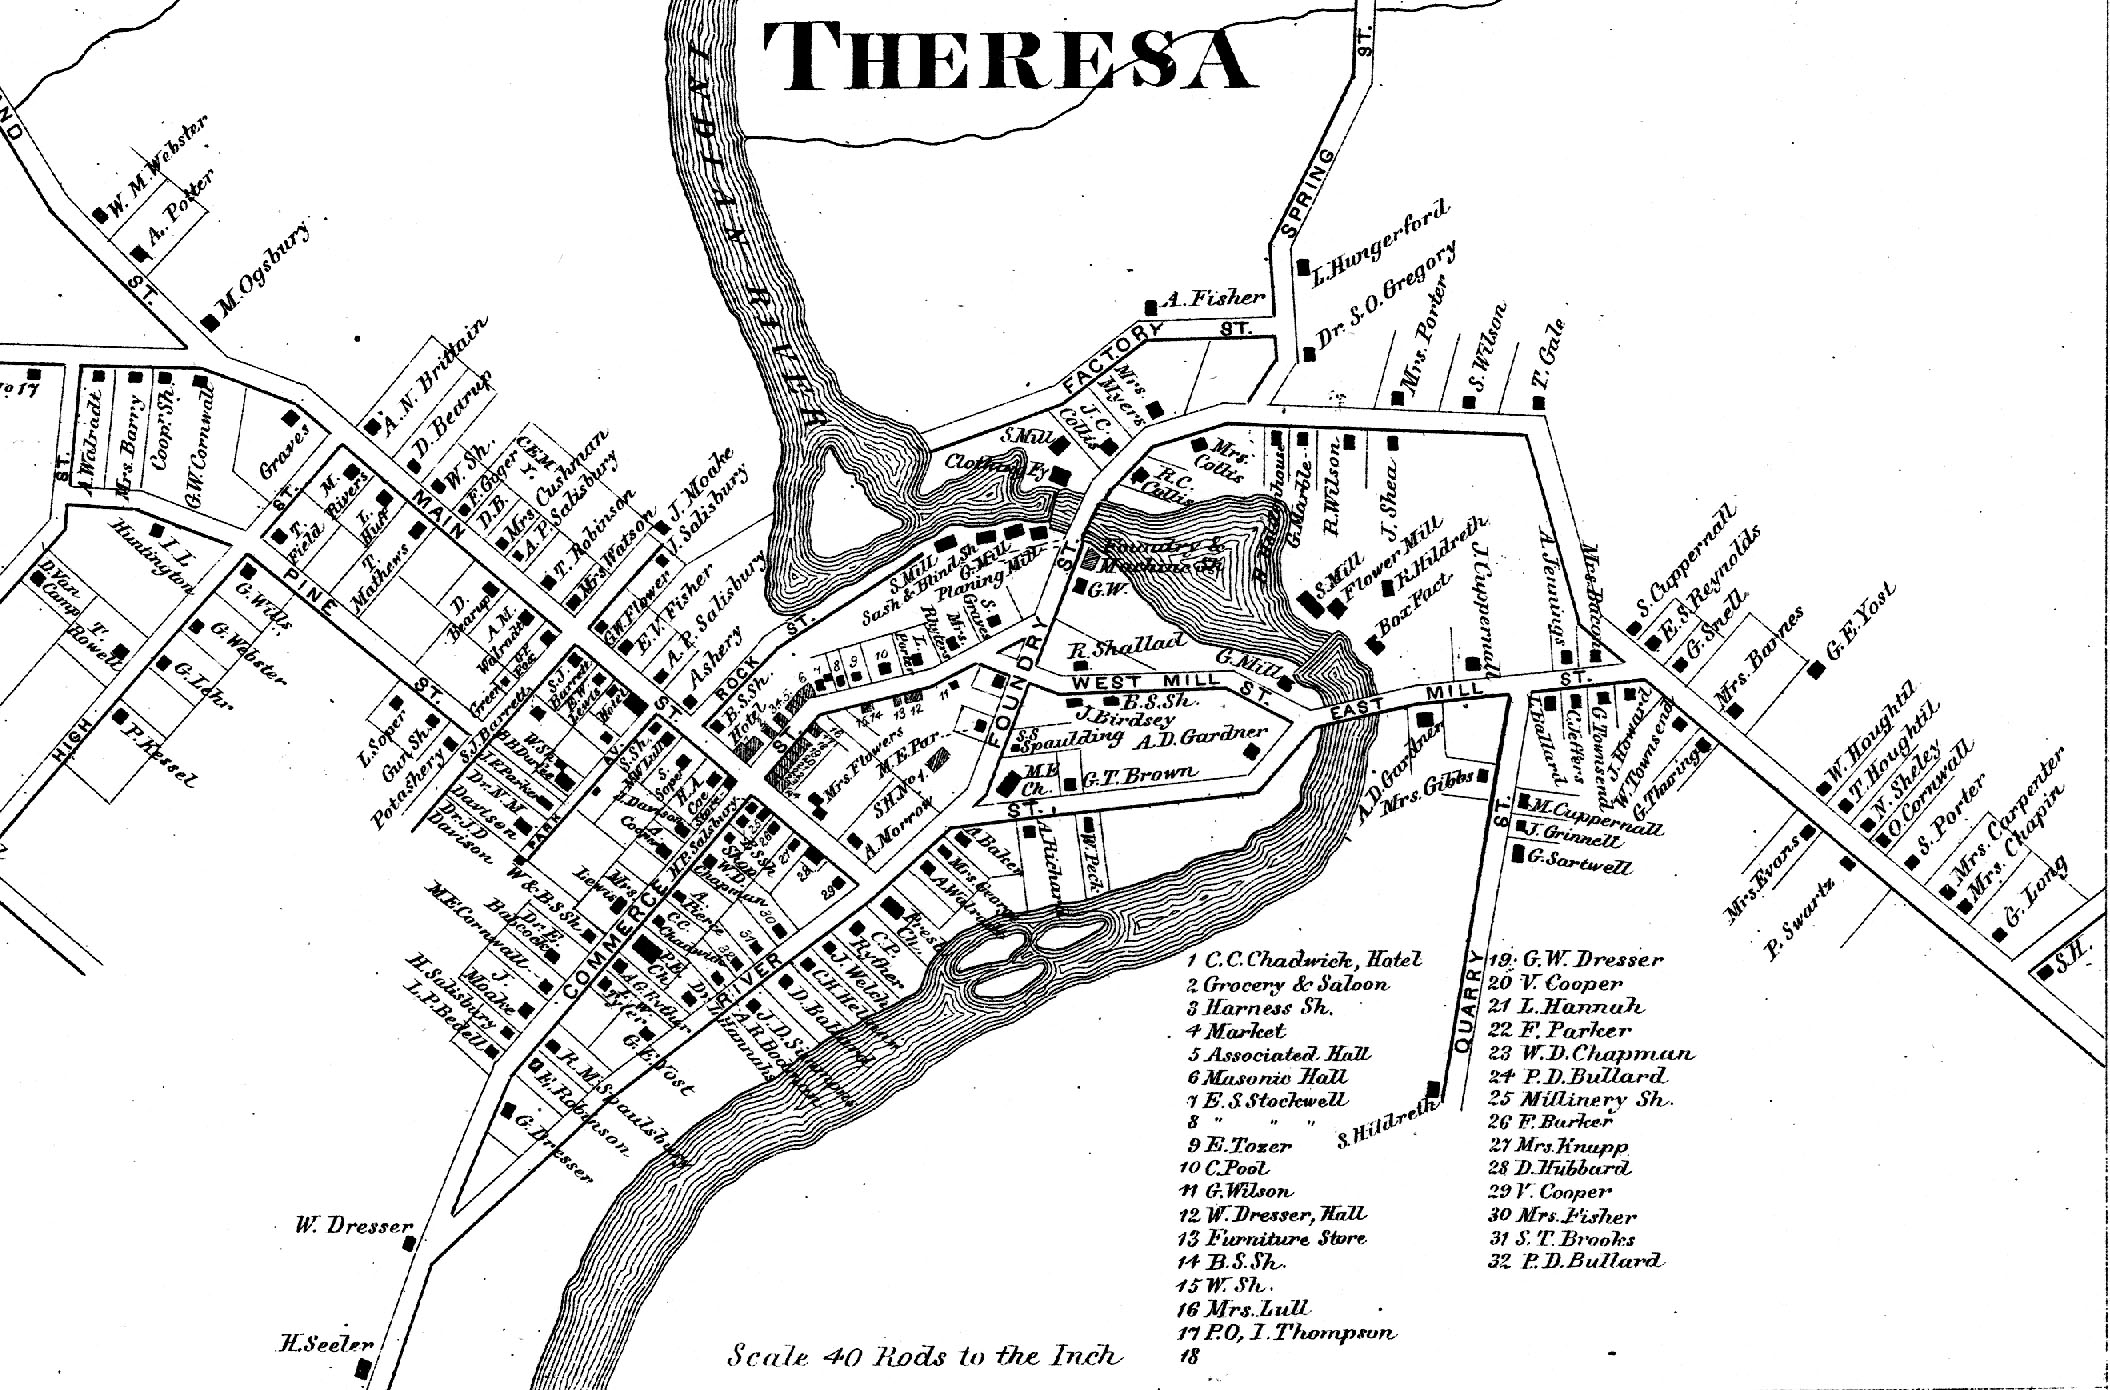 1864 Map of Theresa